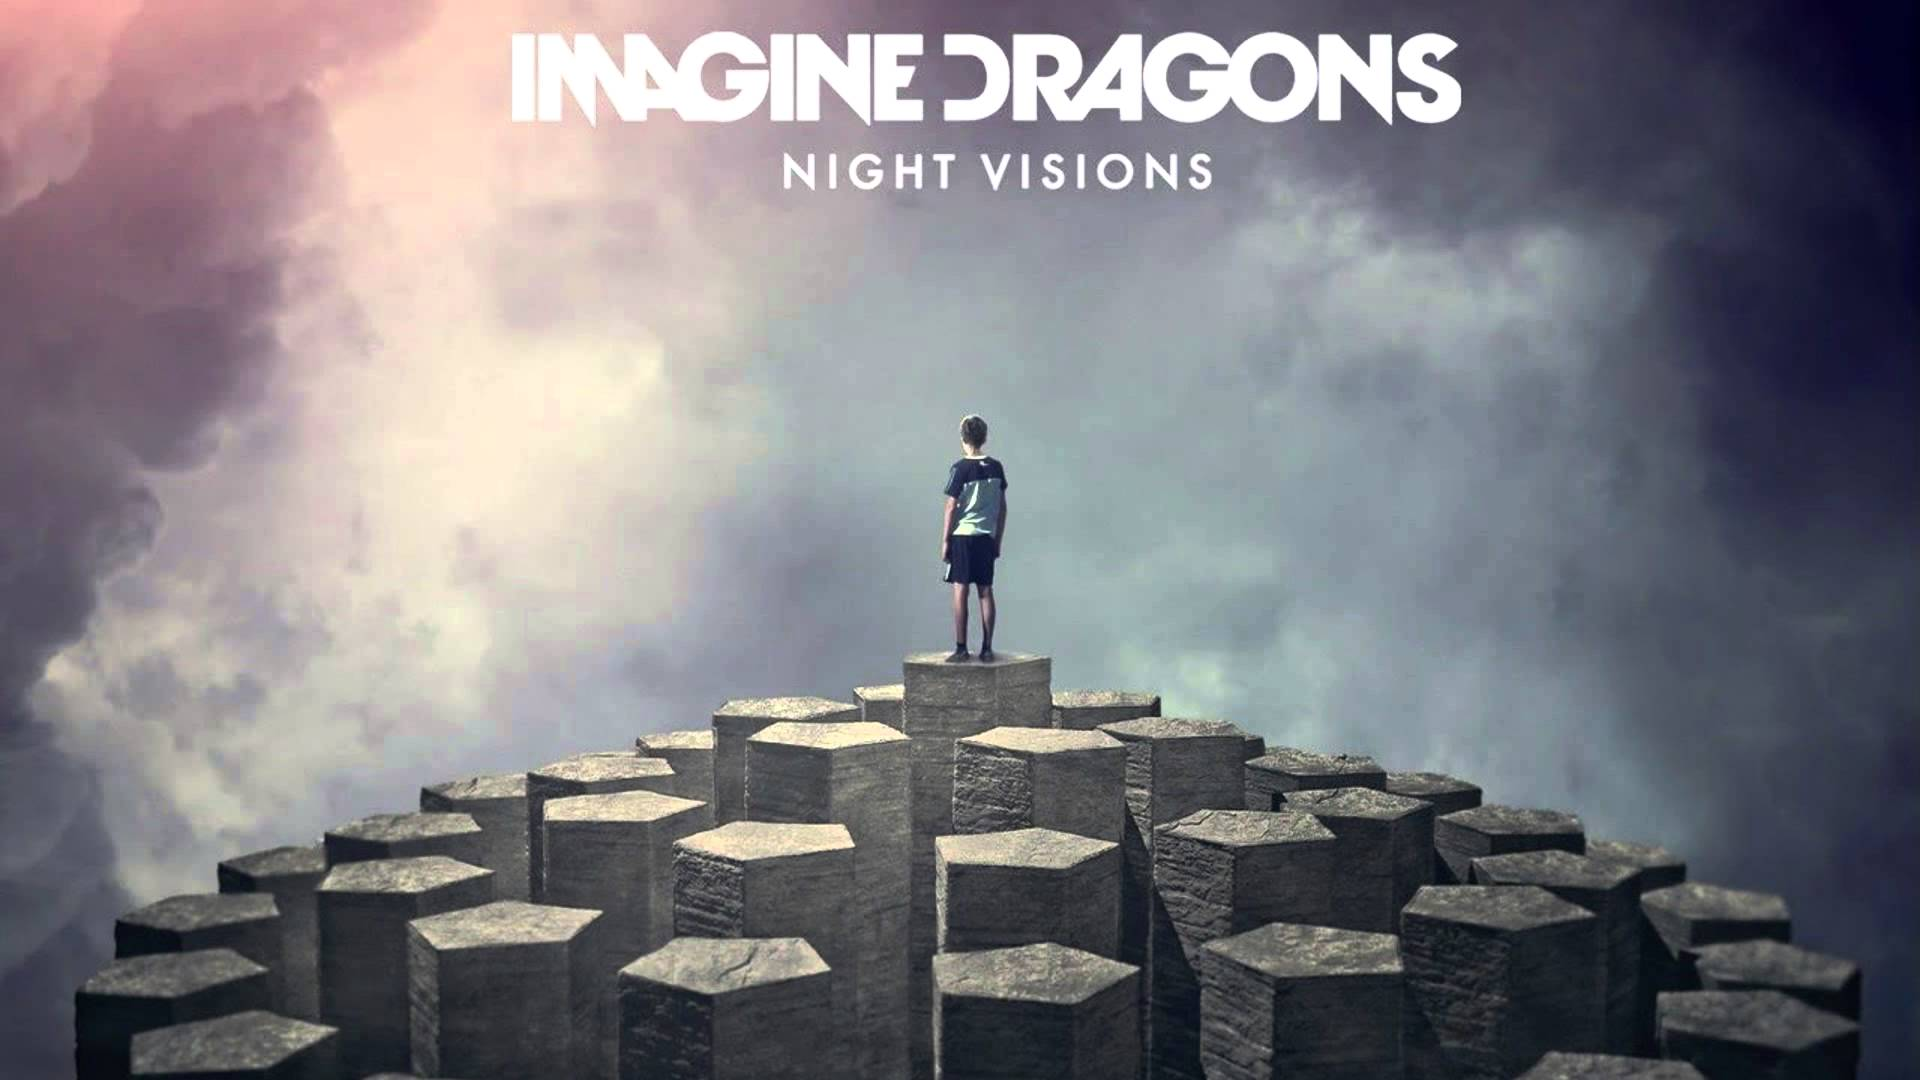 Night Visions Imagine Dragons Wallpaper